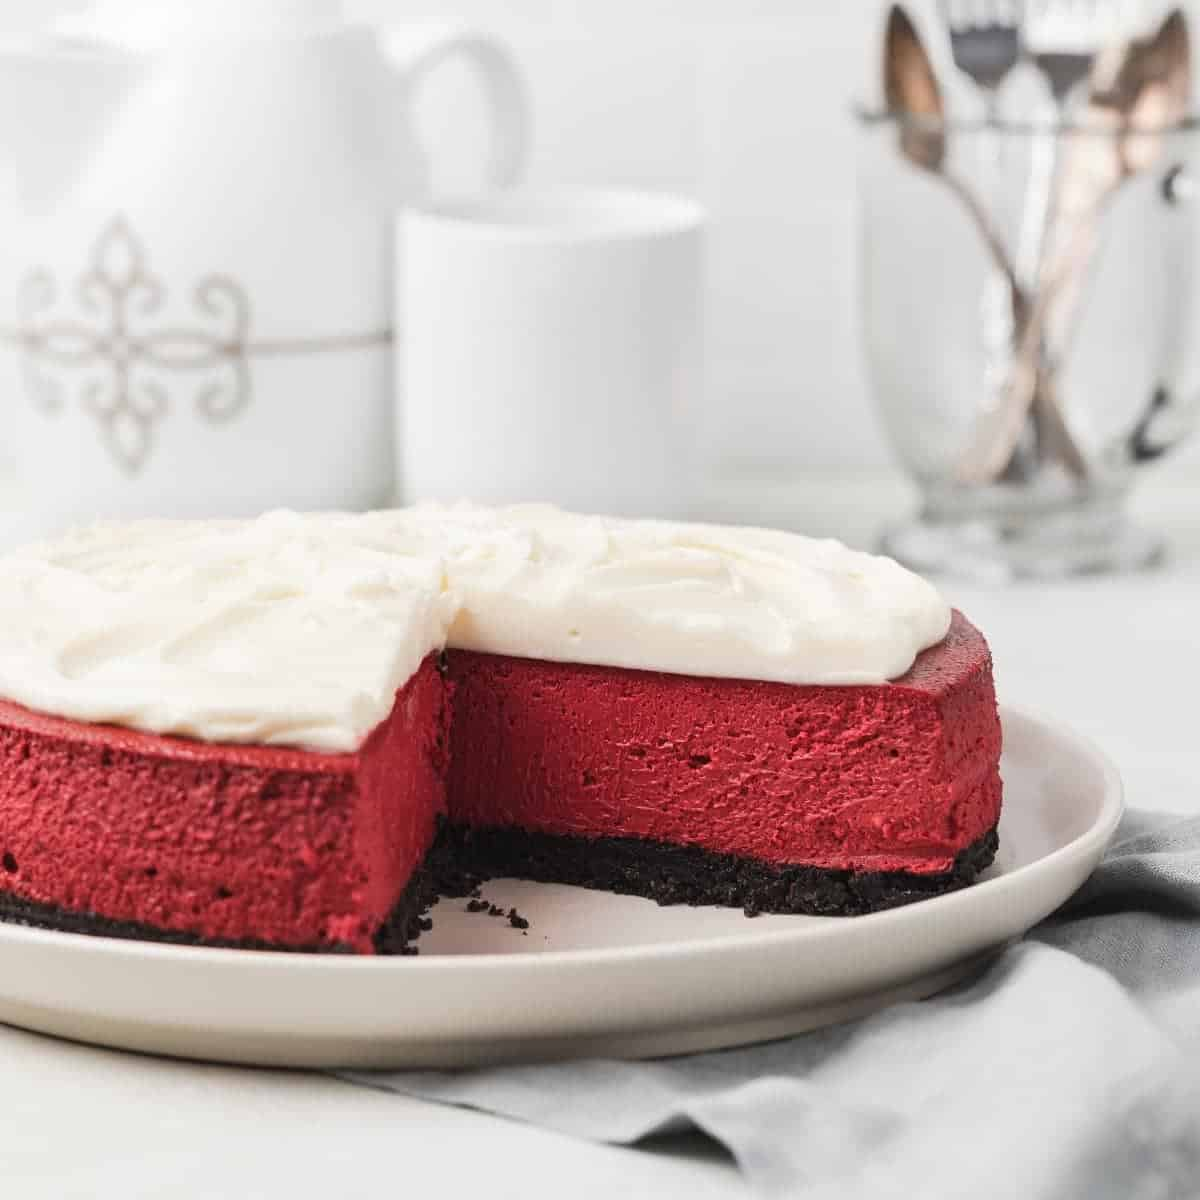 red velvet cheesecake with a slice taken out